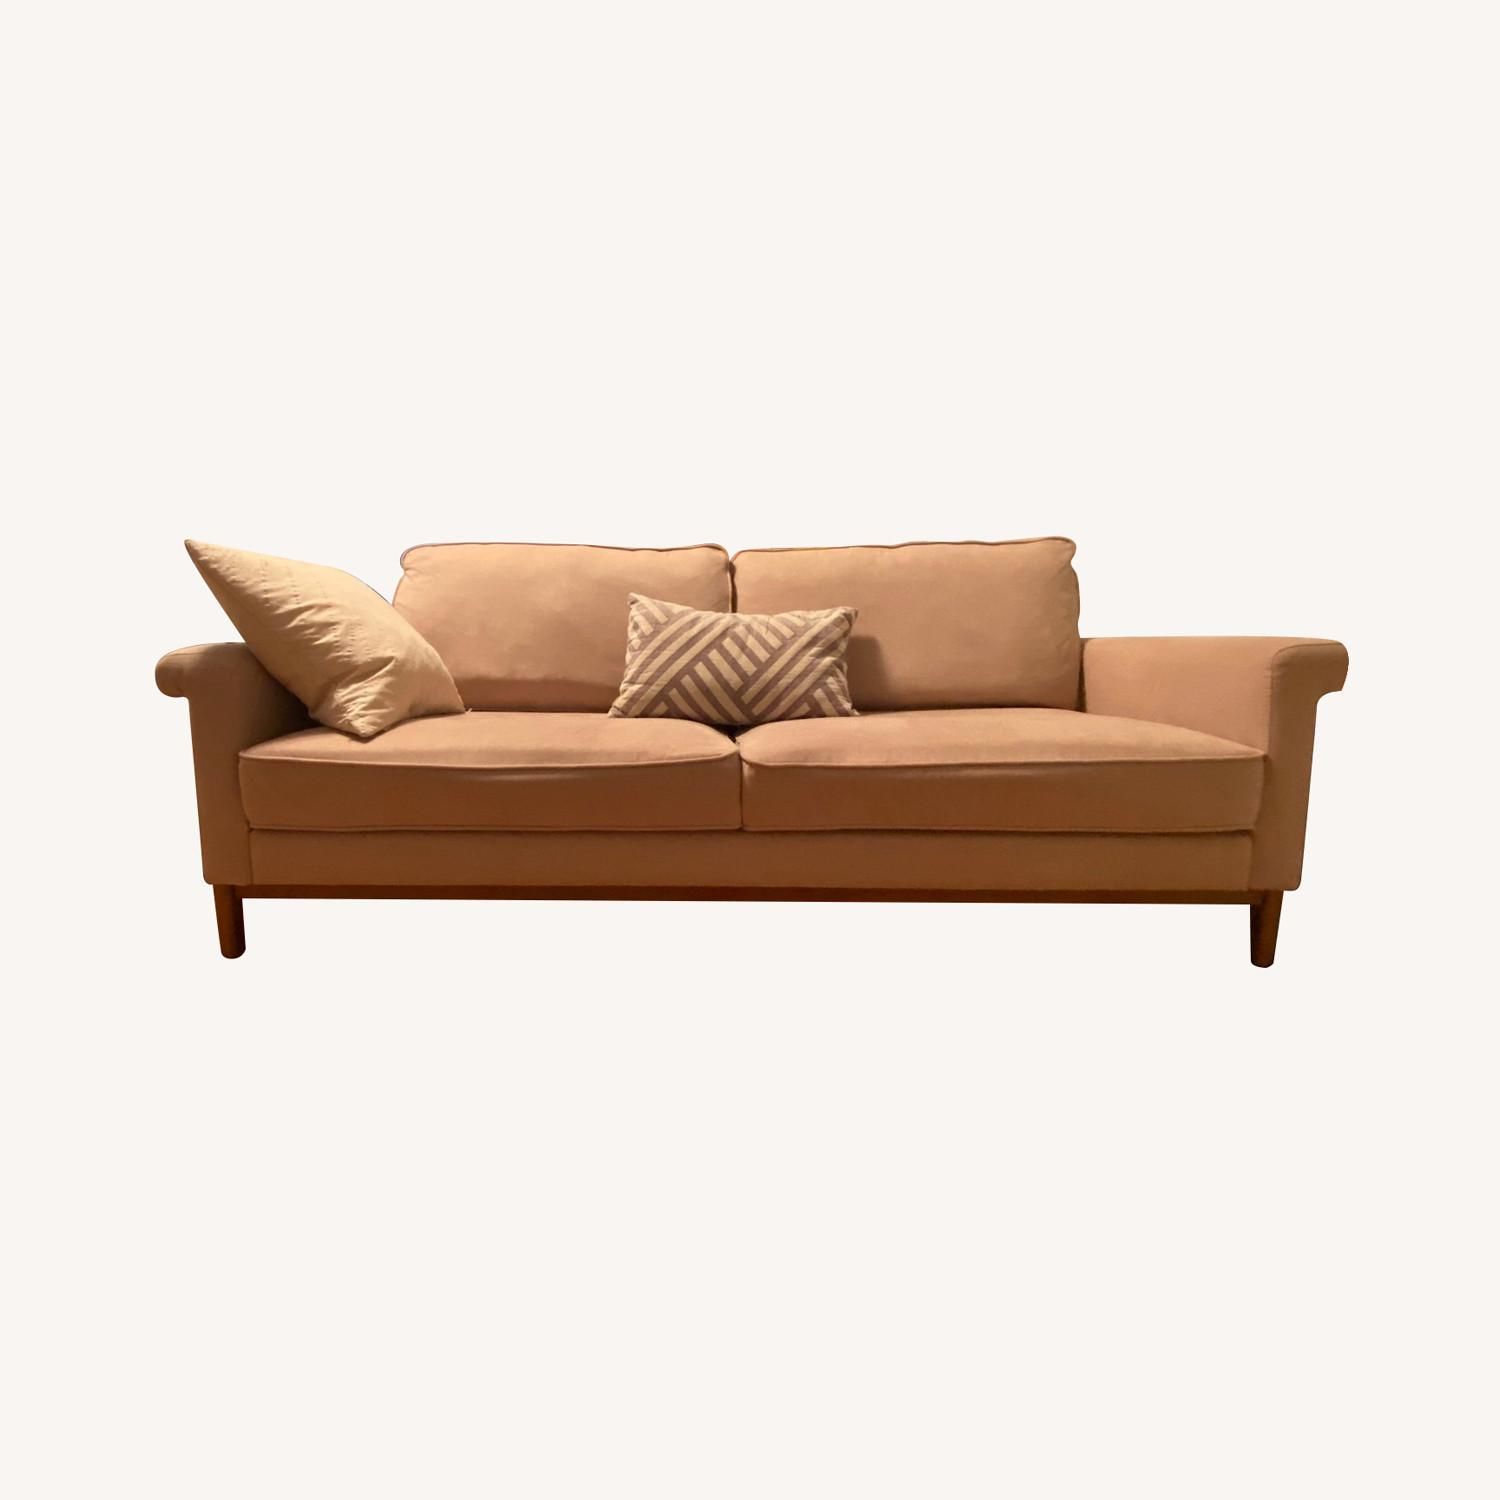 Urban Outfitters Pink Sofa - image-0